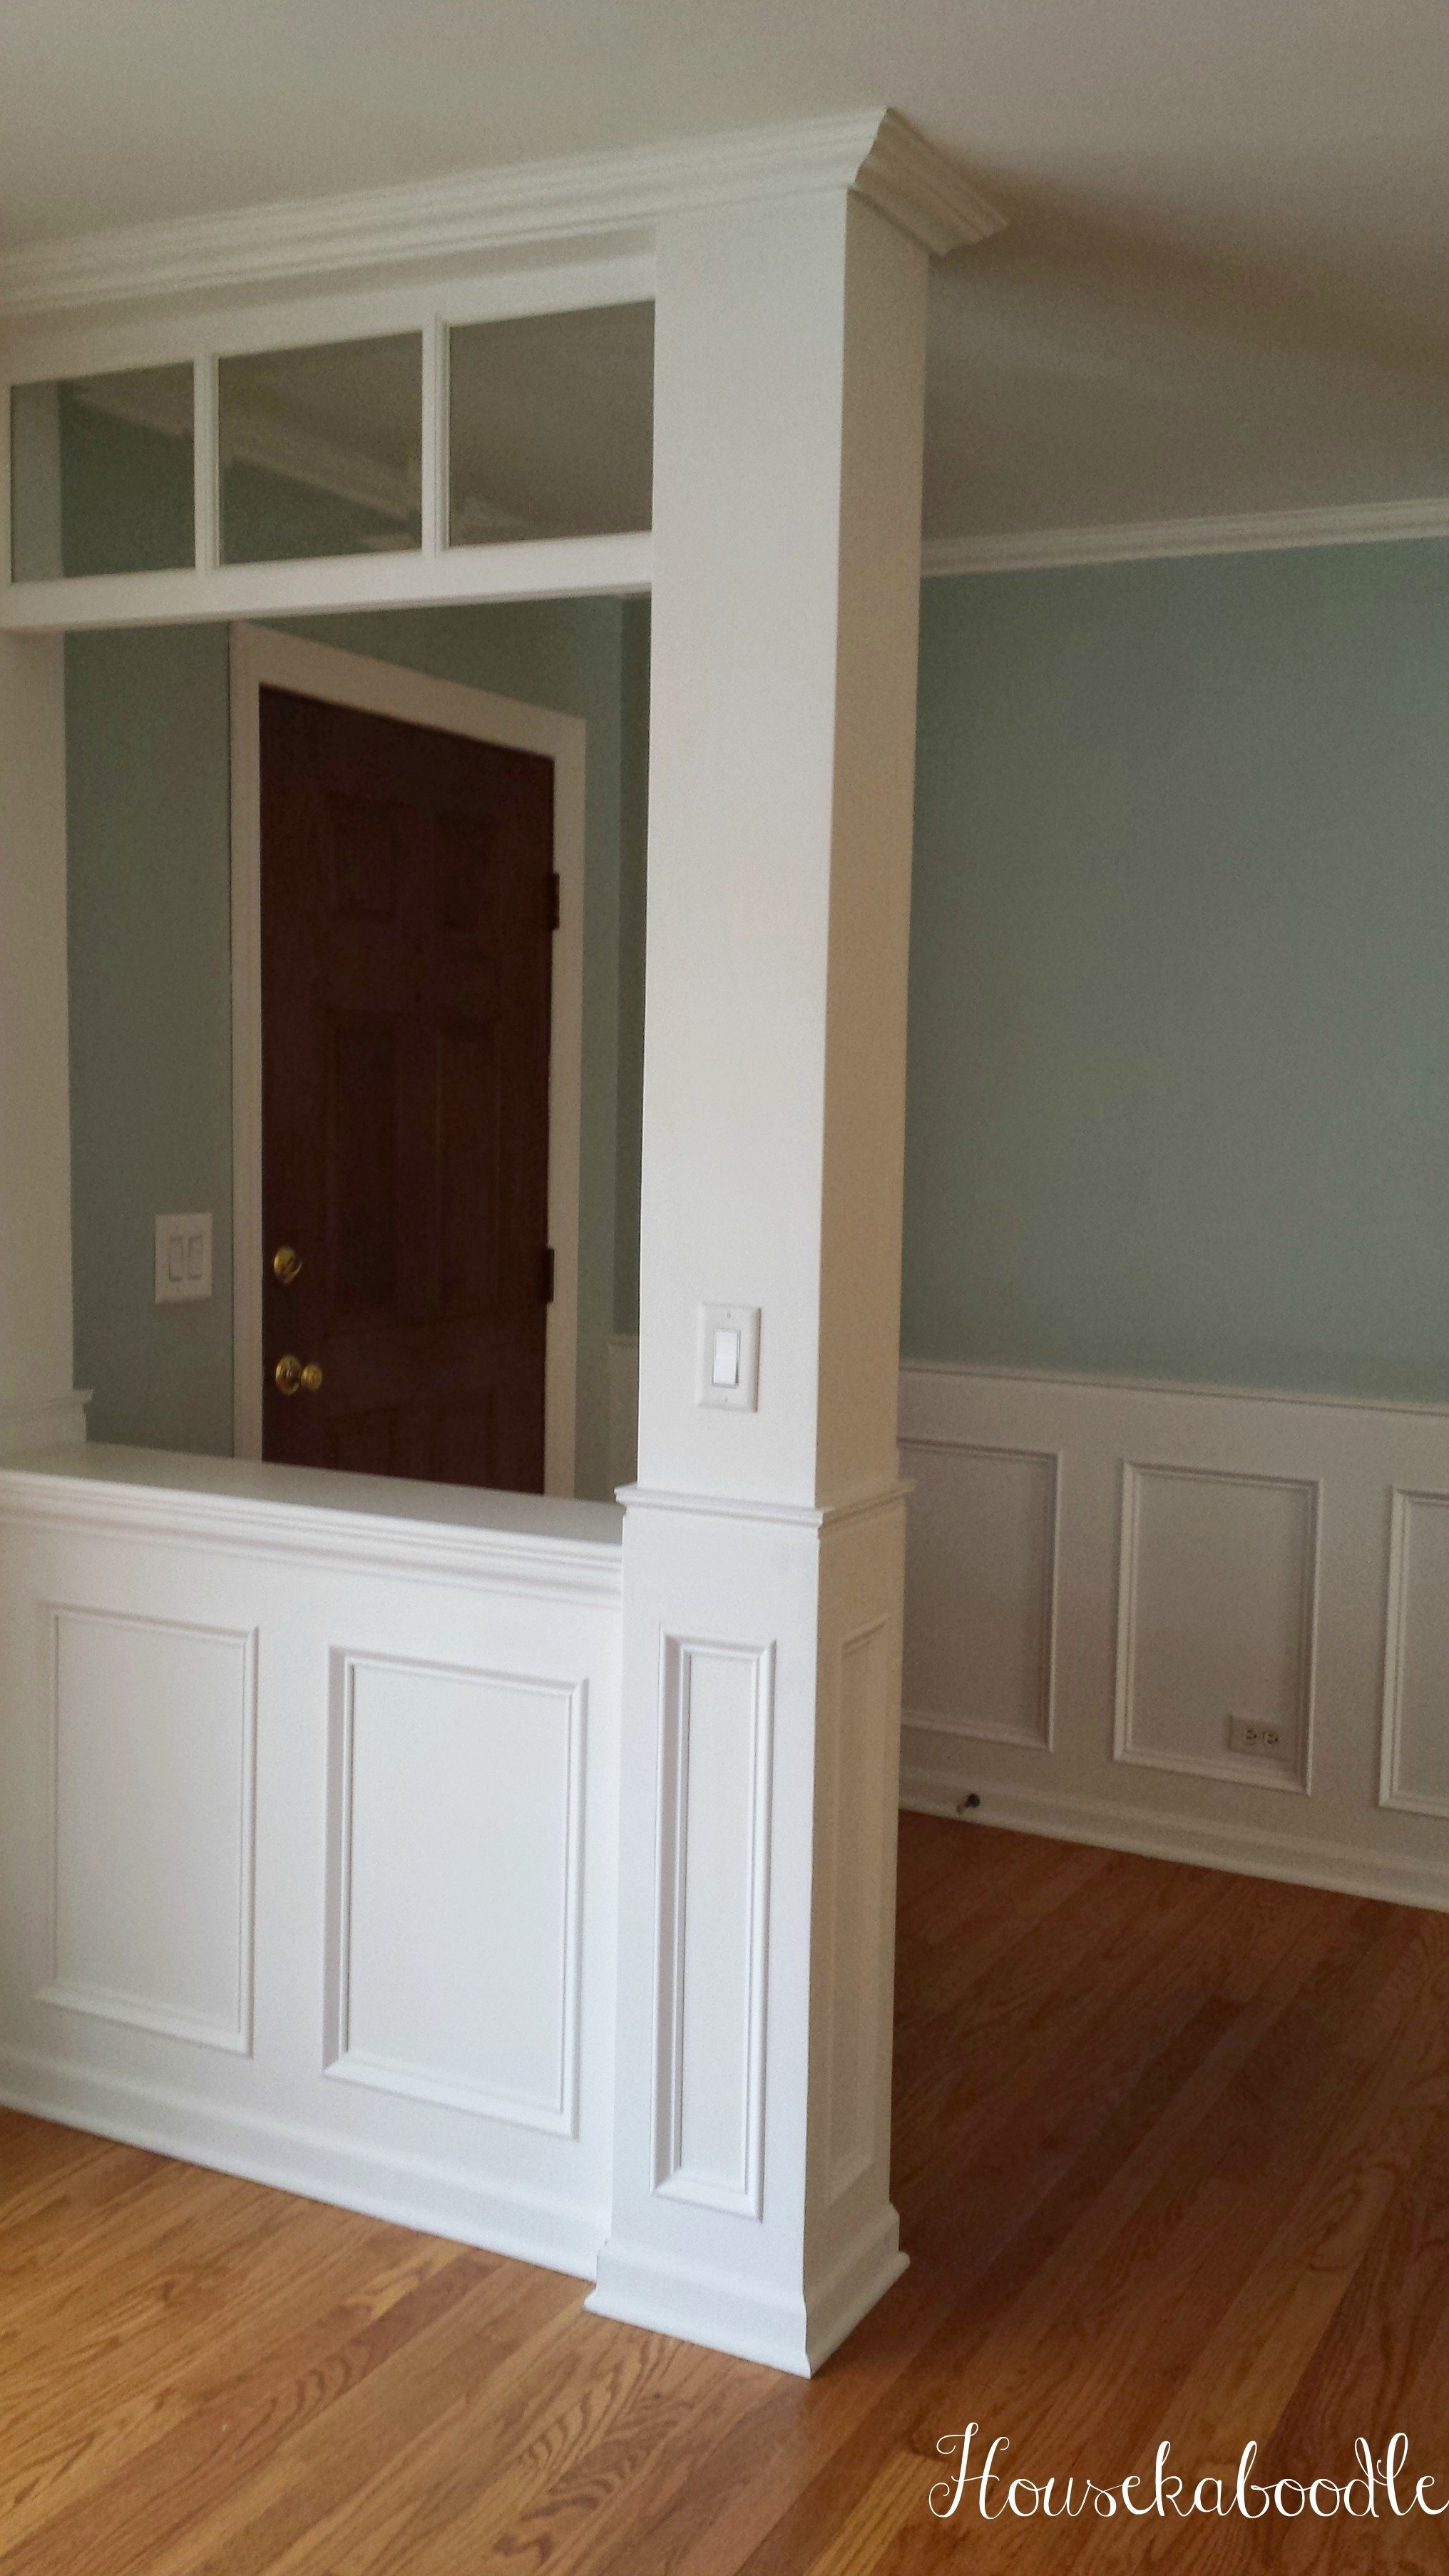 Entryway After wall color is Palladian Blue by Benjamin Moore- Housekaboodle wainscoting wall